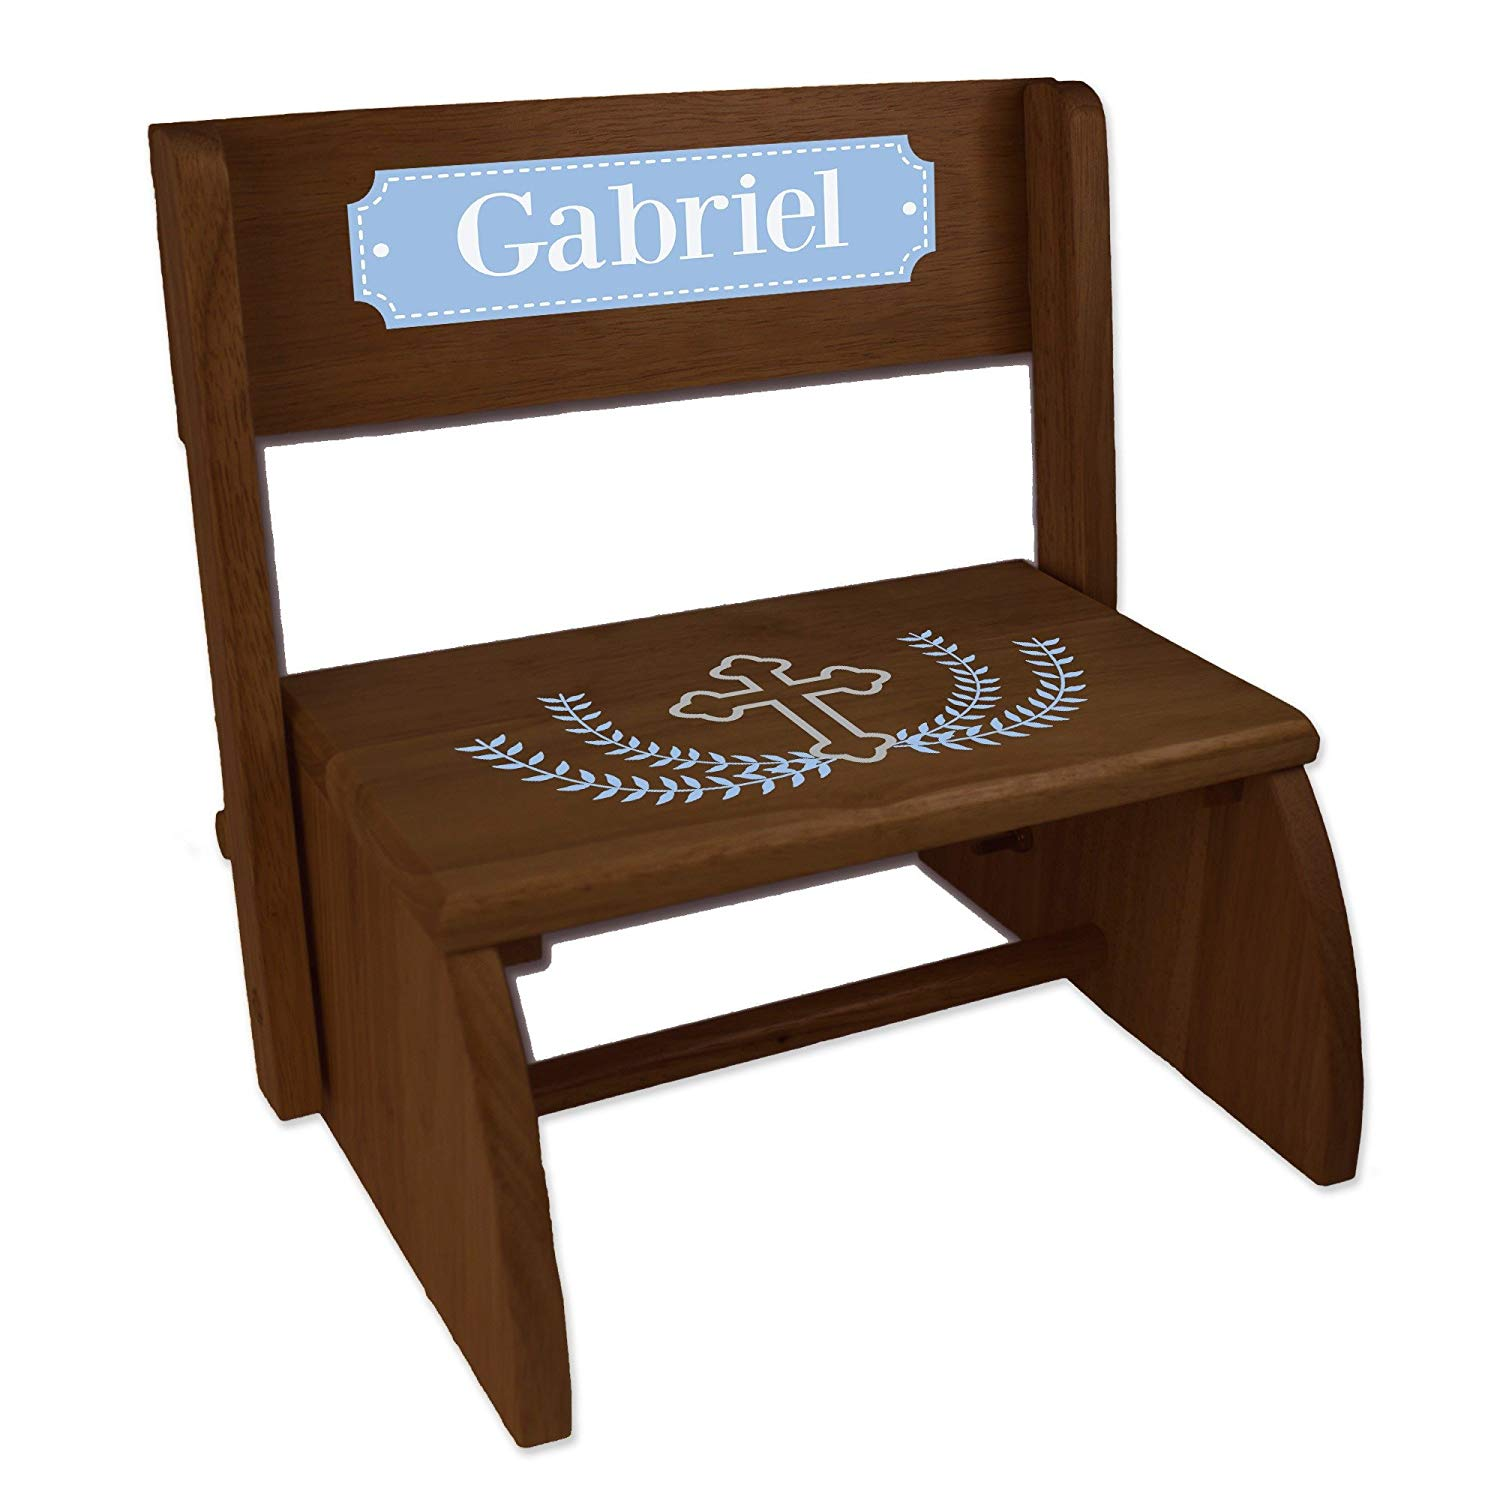 Personalized Cross Garland Light Blue Espresso Wooden Folding Stool and Seat